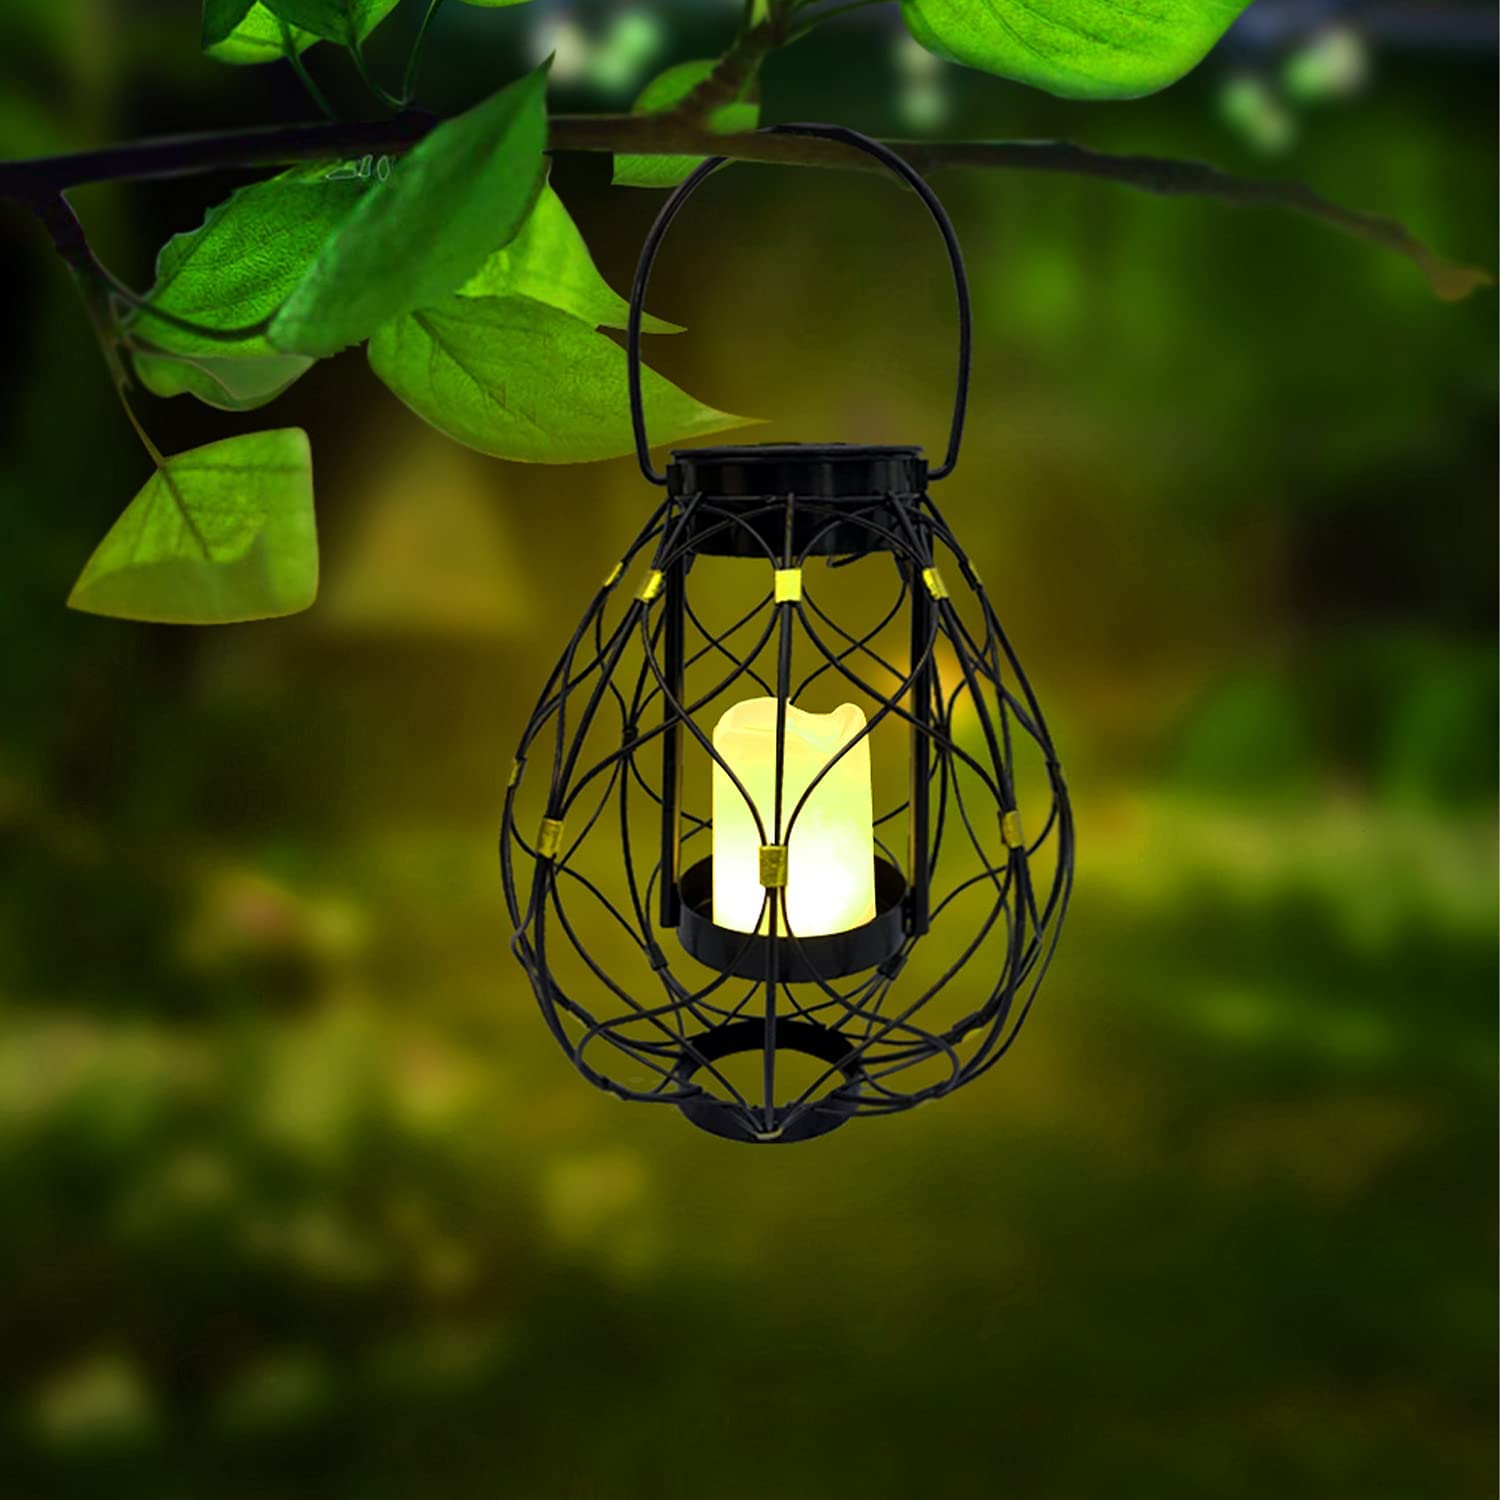 Hanging Solar Candle Lanterns Outdoor - shumi Candle Effect Lights Solar Powered with Handle, Warm White LED, Auto ON/Off, Perfect for Garden Yard Patio Porch Pathway Decor(1 Pack)